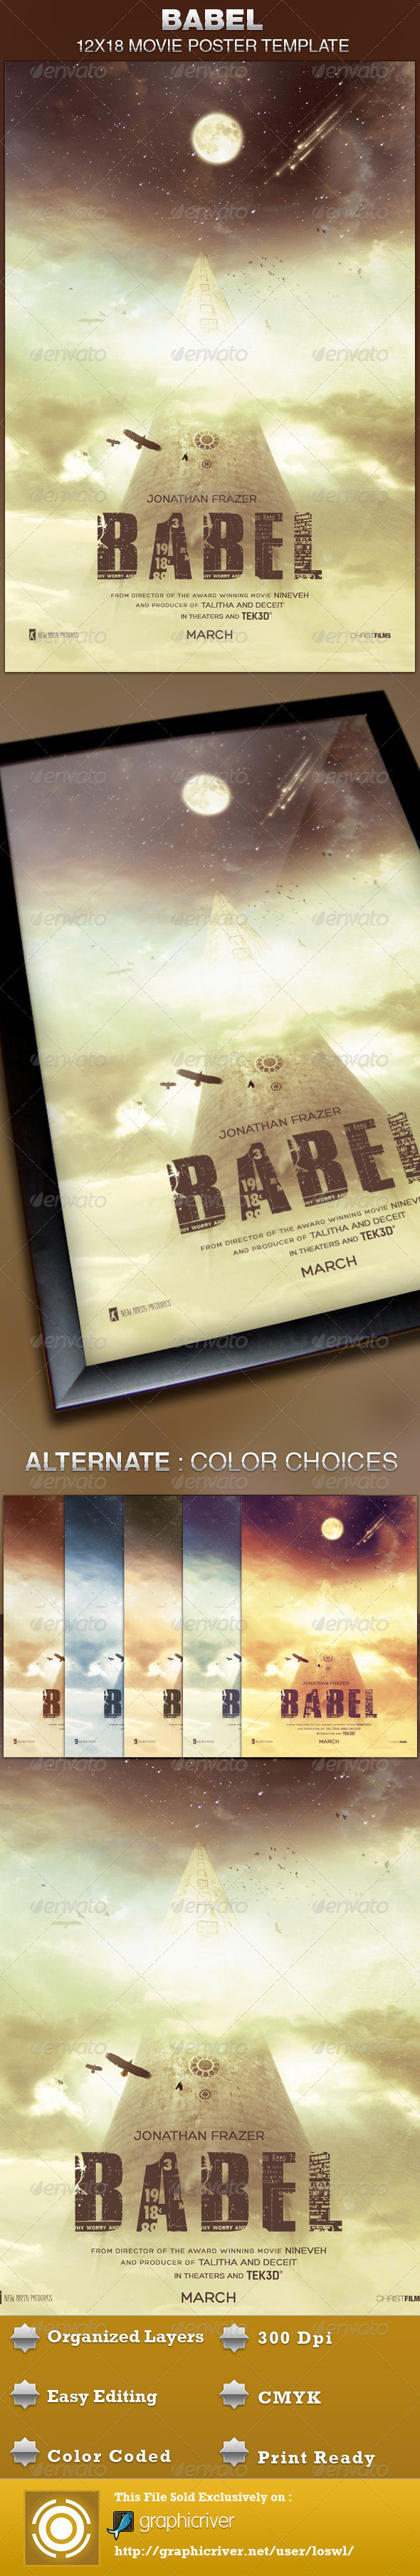 GraphicRiver Babel Movie Poster Template 4551239